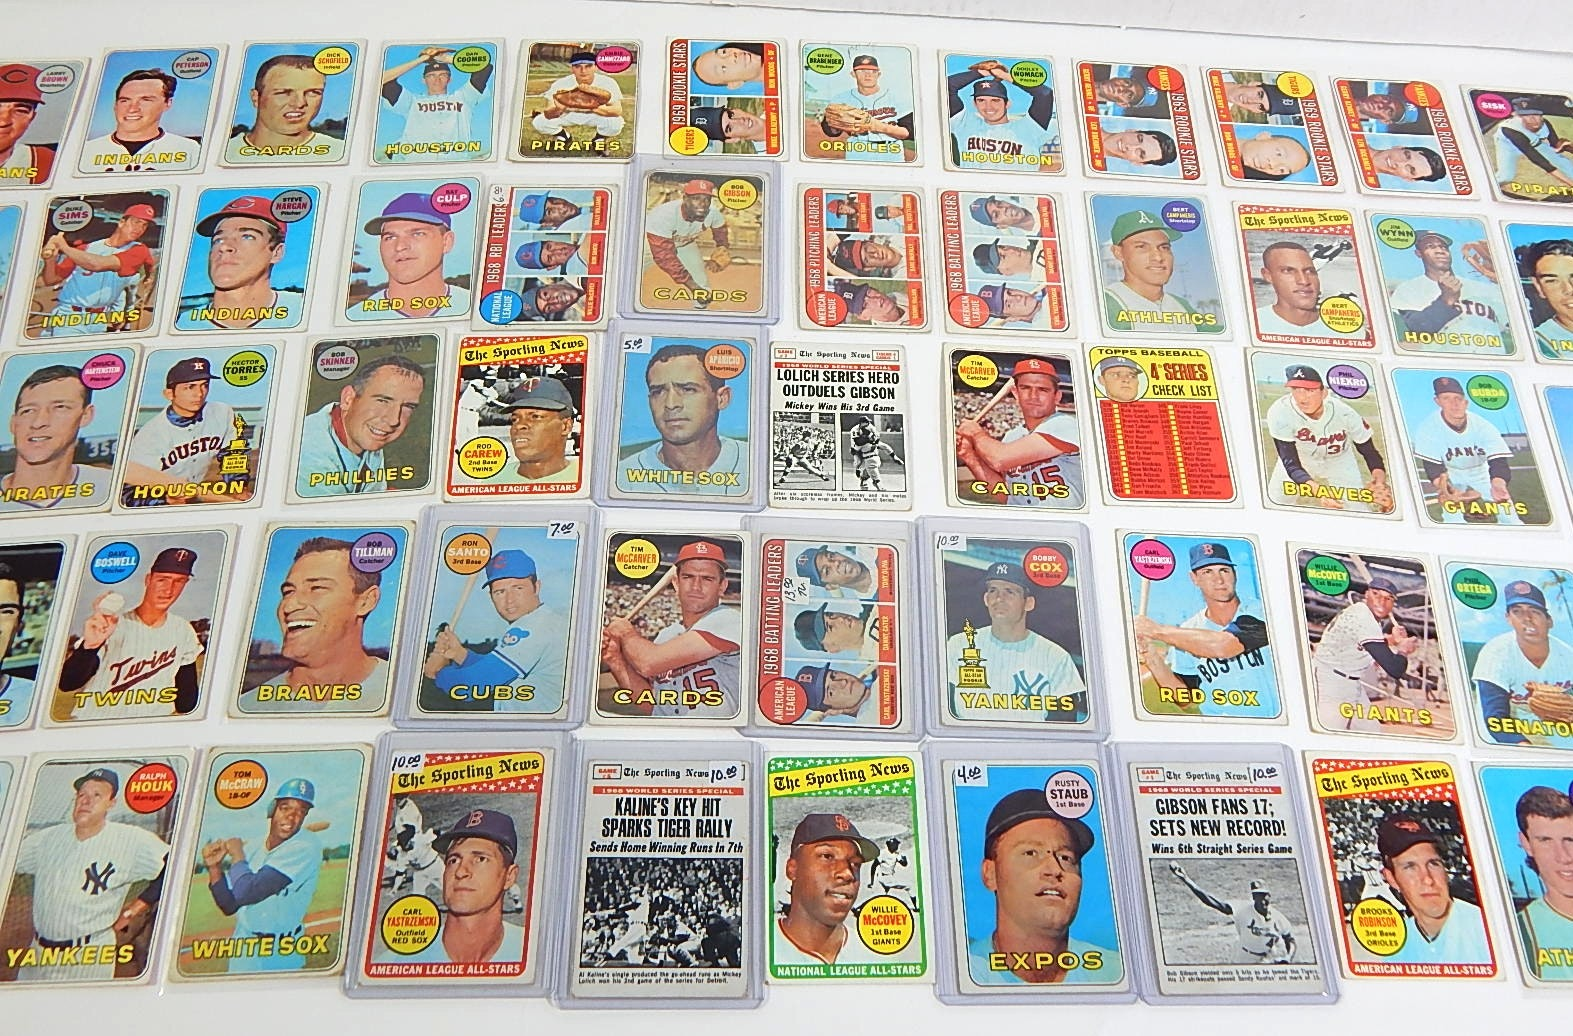 1969 Topps Baseball Card Lot with Yastrzemski, McCovey, Gibson, and More